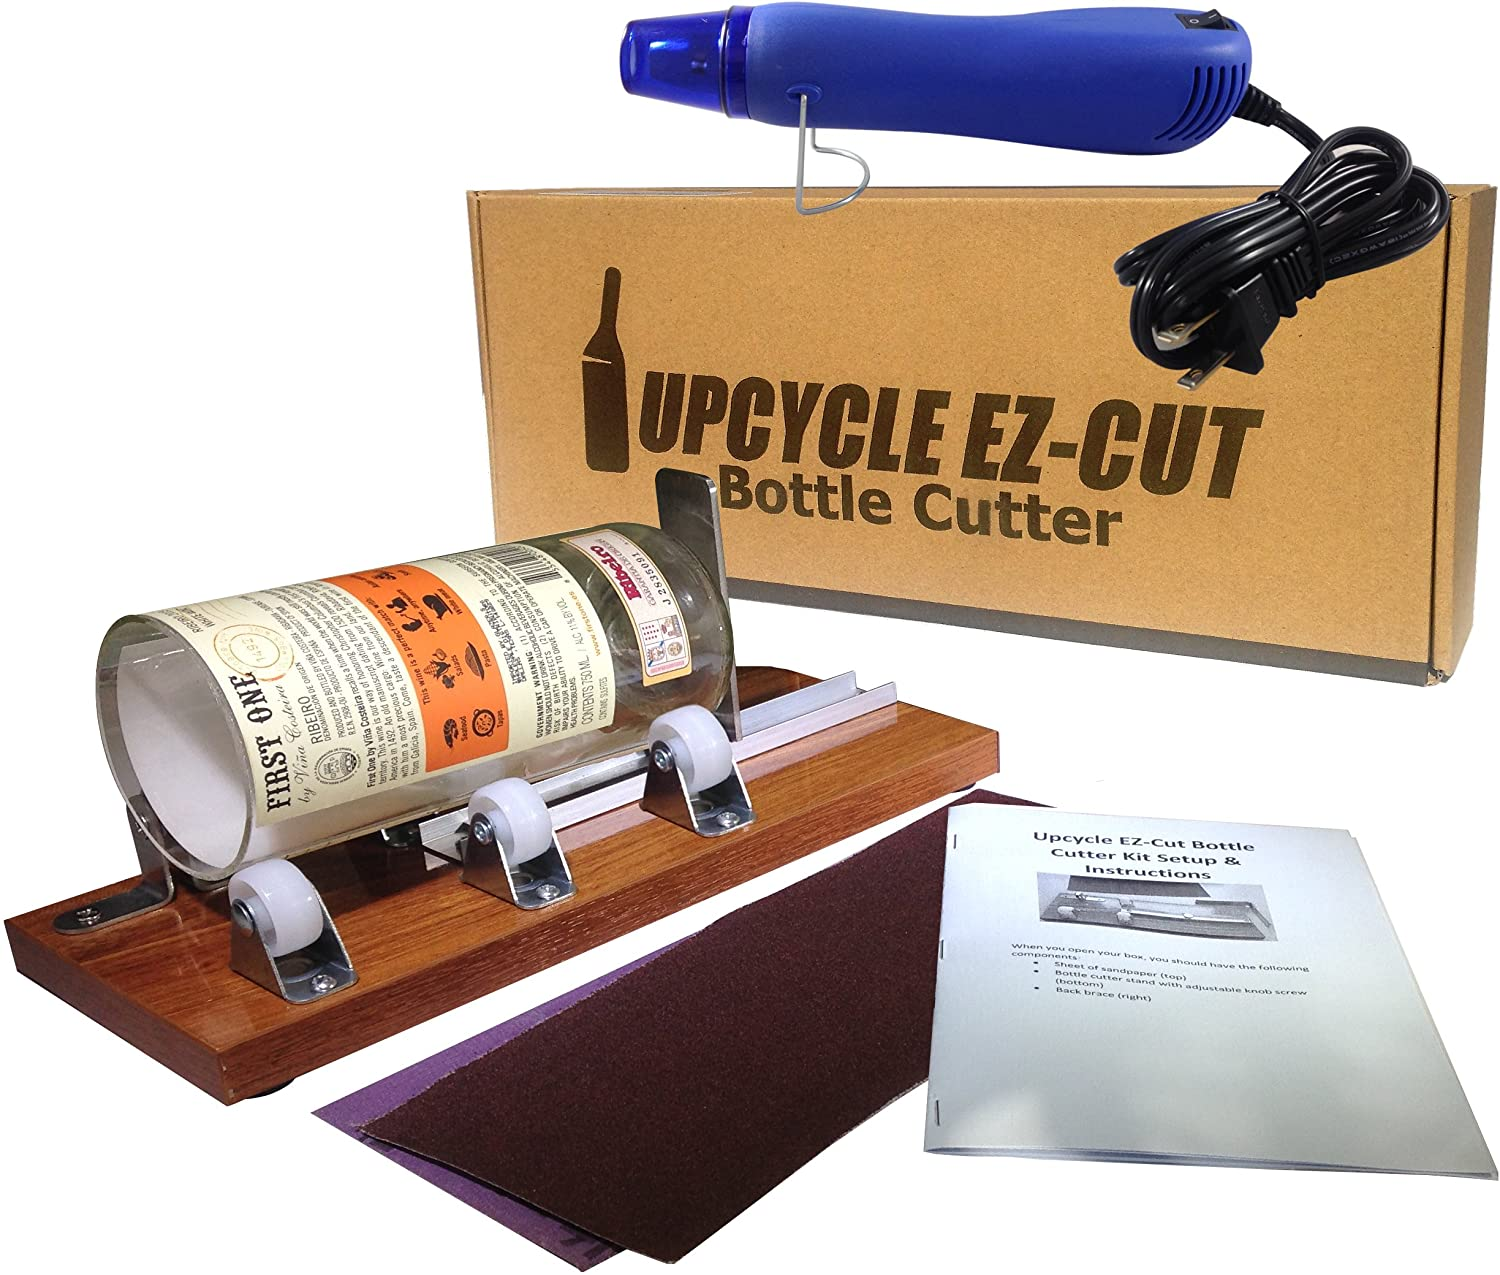 Glass Bottle Cutter (Deluxe) Kit, Upcycle EZ-Cut: Beer & Wine Bottle Cutting + Edge Sanding Paper & Heat Tool First Place Products